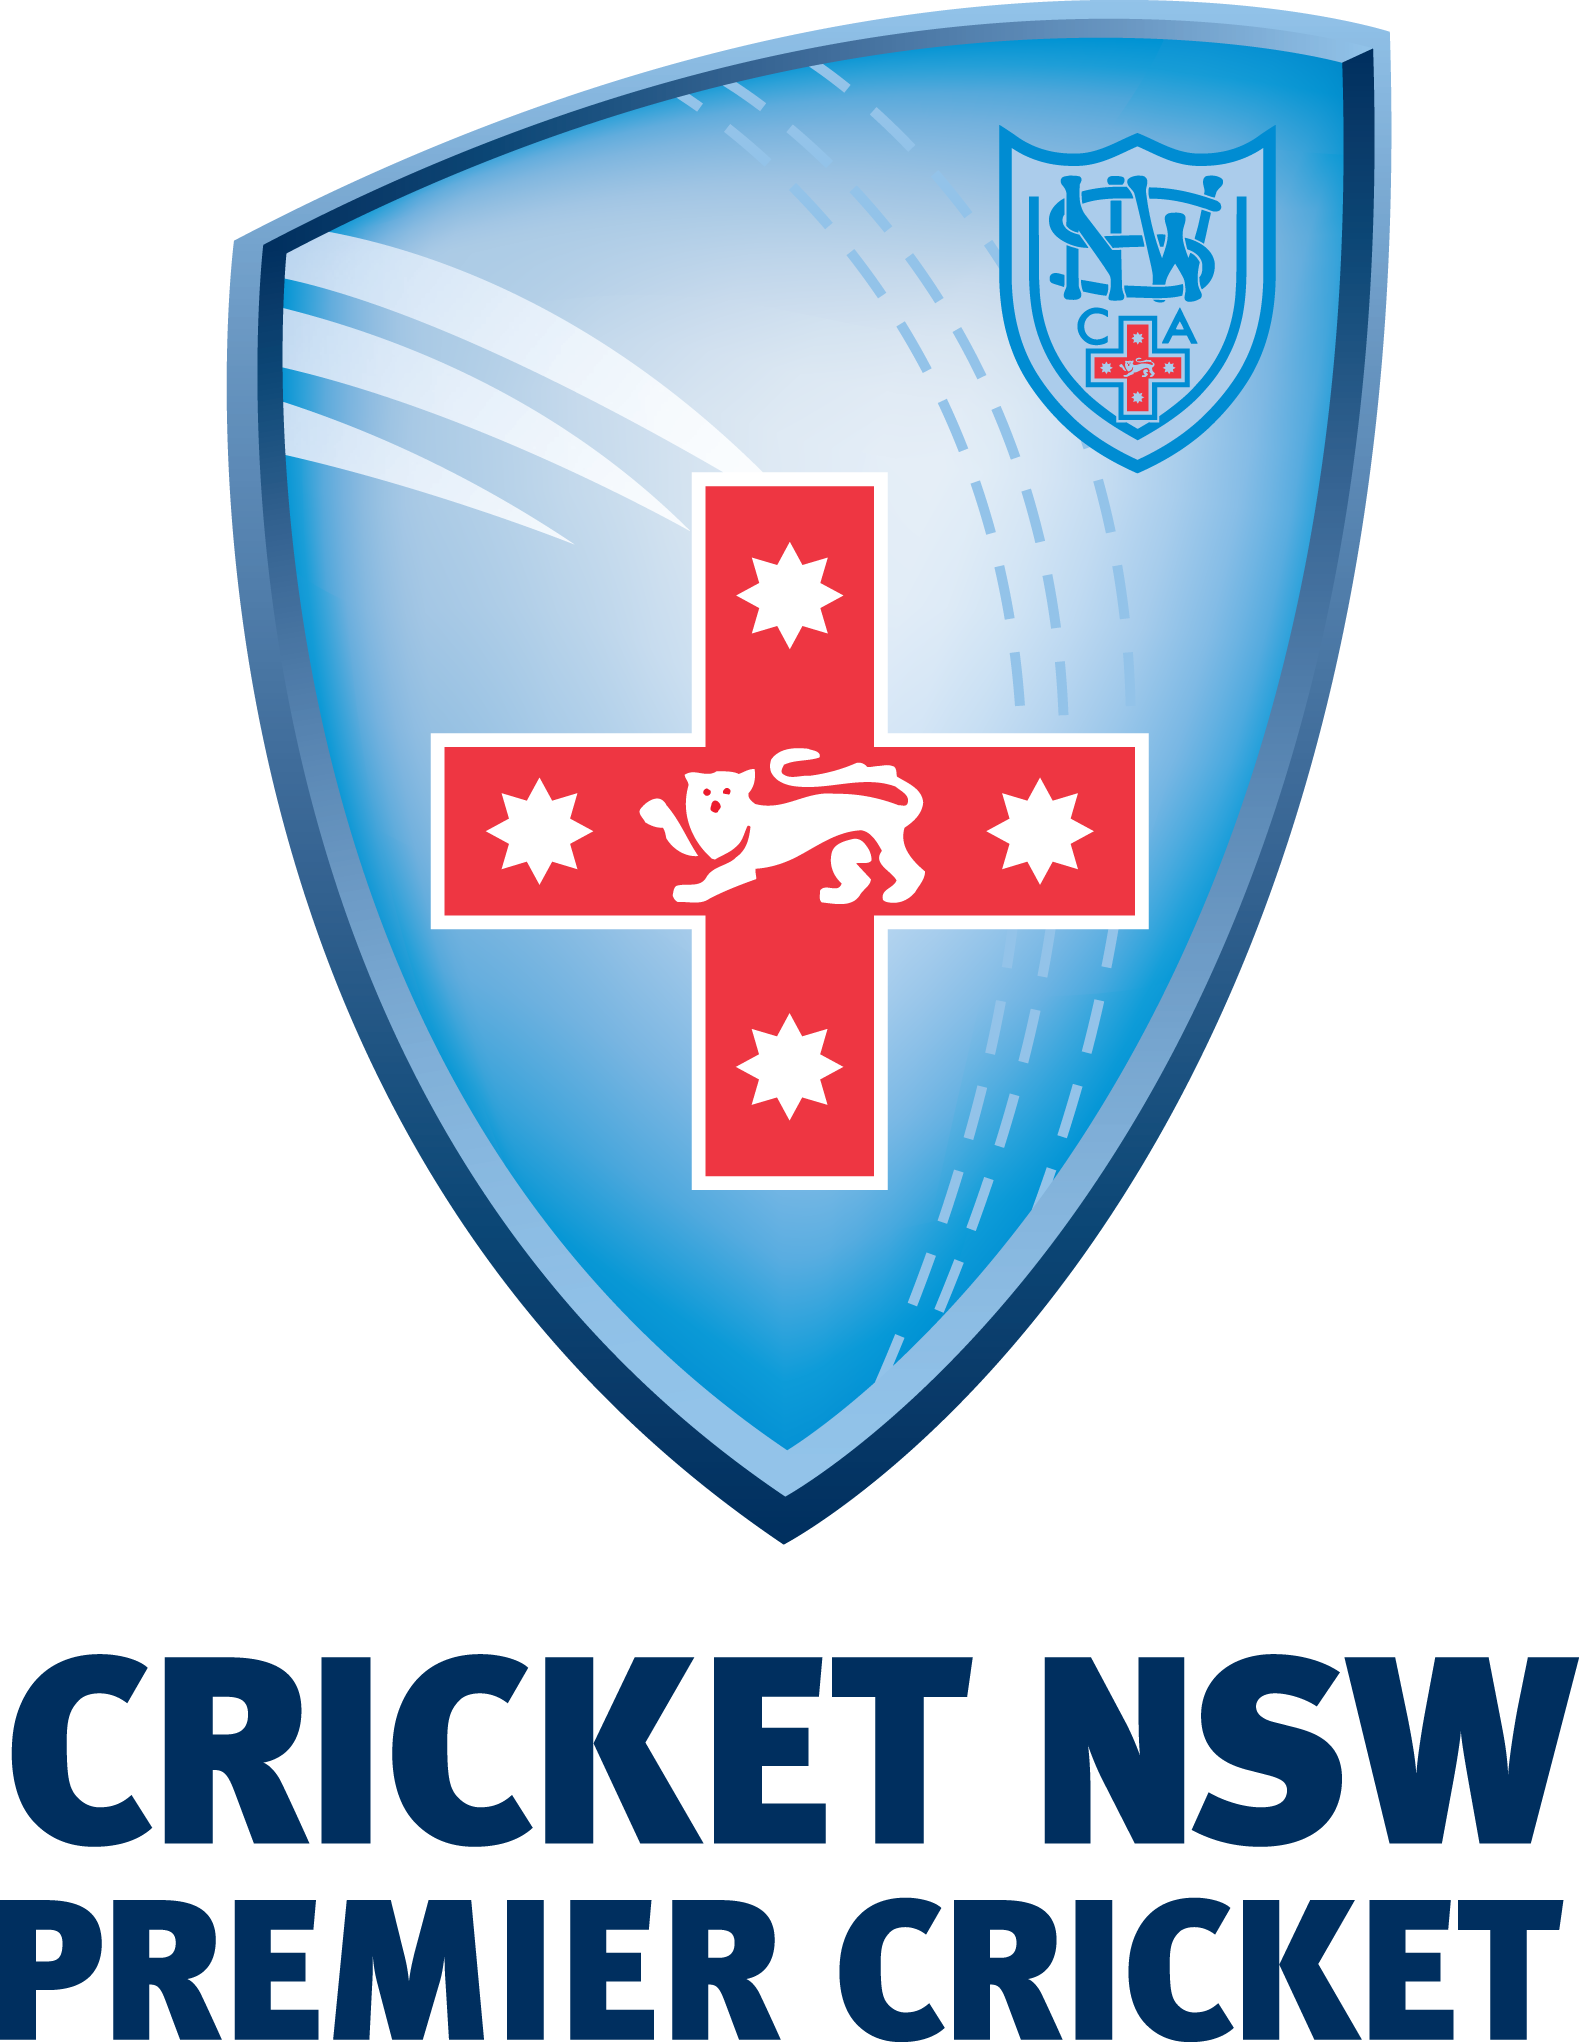 NSW Premier Cricket